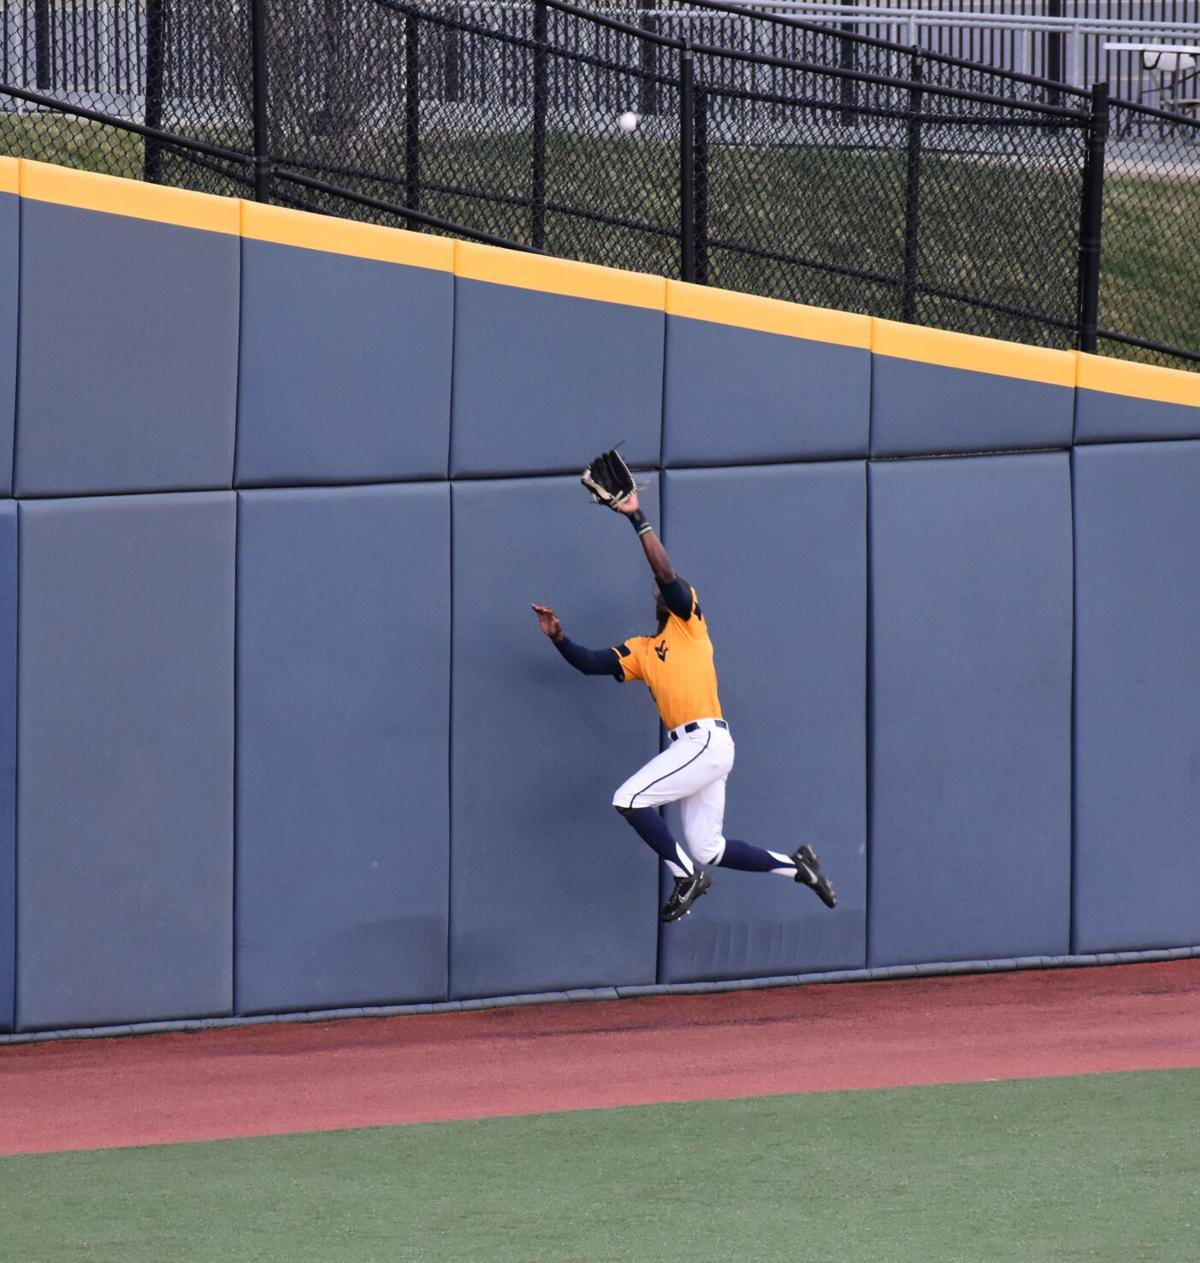 Paul McIntosh leaps for catch at the wall in game two of a doubleheader versus Kansas at the Monongalia County Ballpark in Morgantown, W.Va., on March 27 2021.